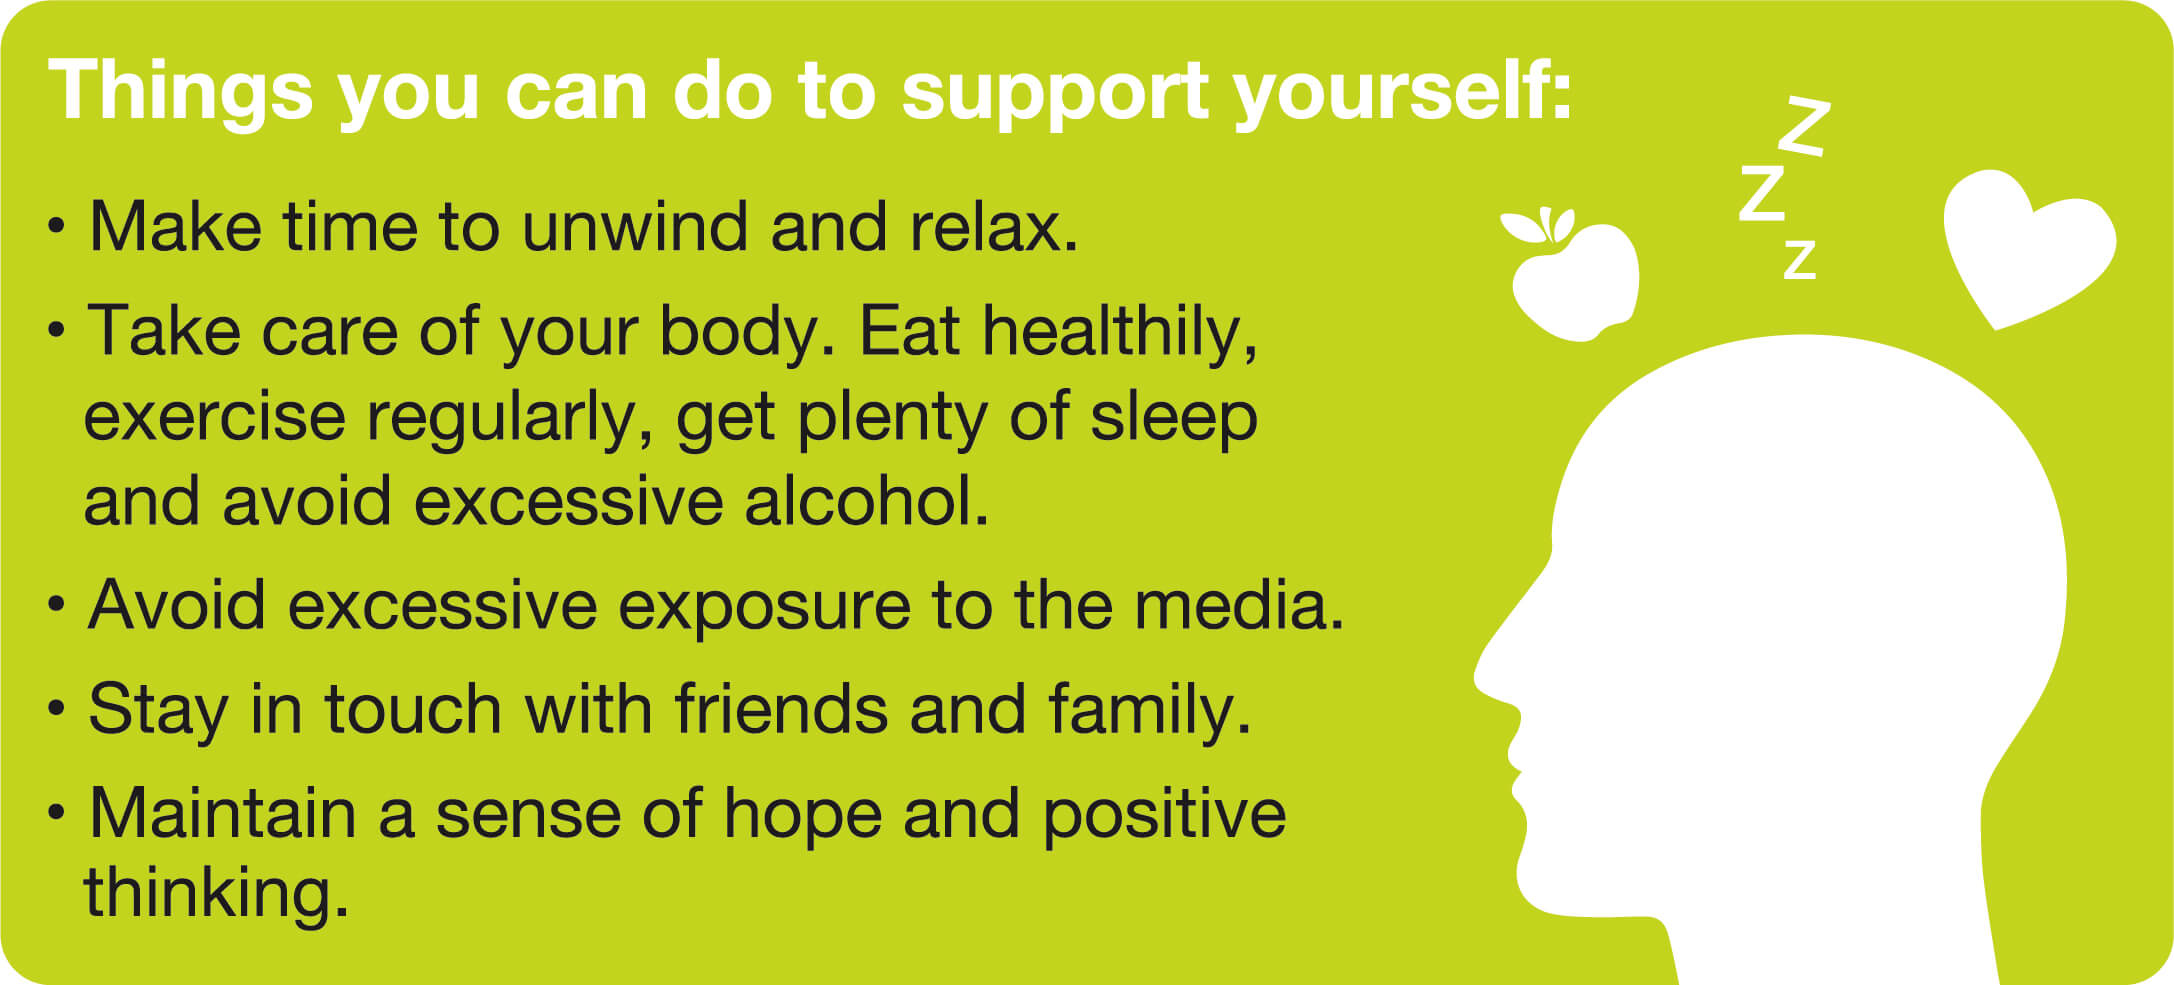 Things you can do to support yourself: Make time to unwind and relax; Take care of your body; Eat healthily, exercise regularly, get plenty of sleep and avoid excessive alcohol; Avoid excessive exposure to the media; Stay in touch with friends and family; Maintain a sense of hope and positive thinking.